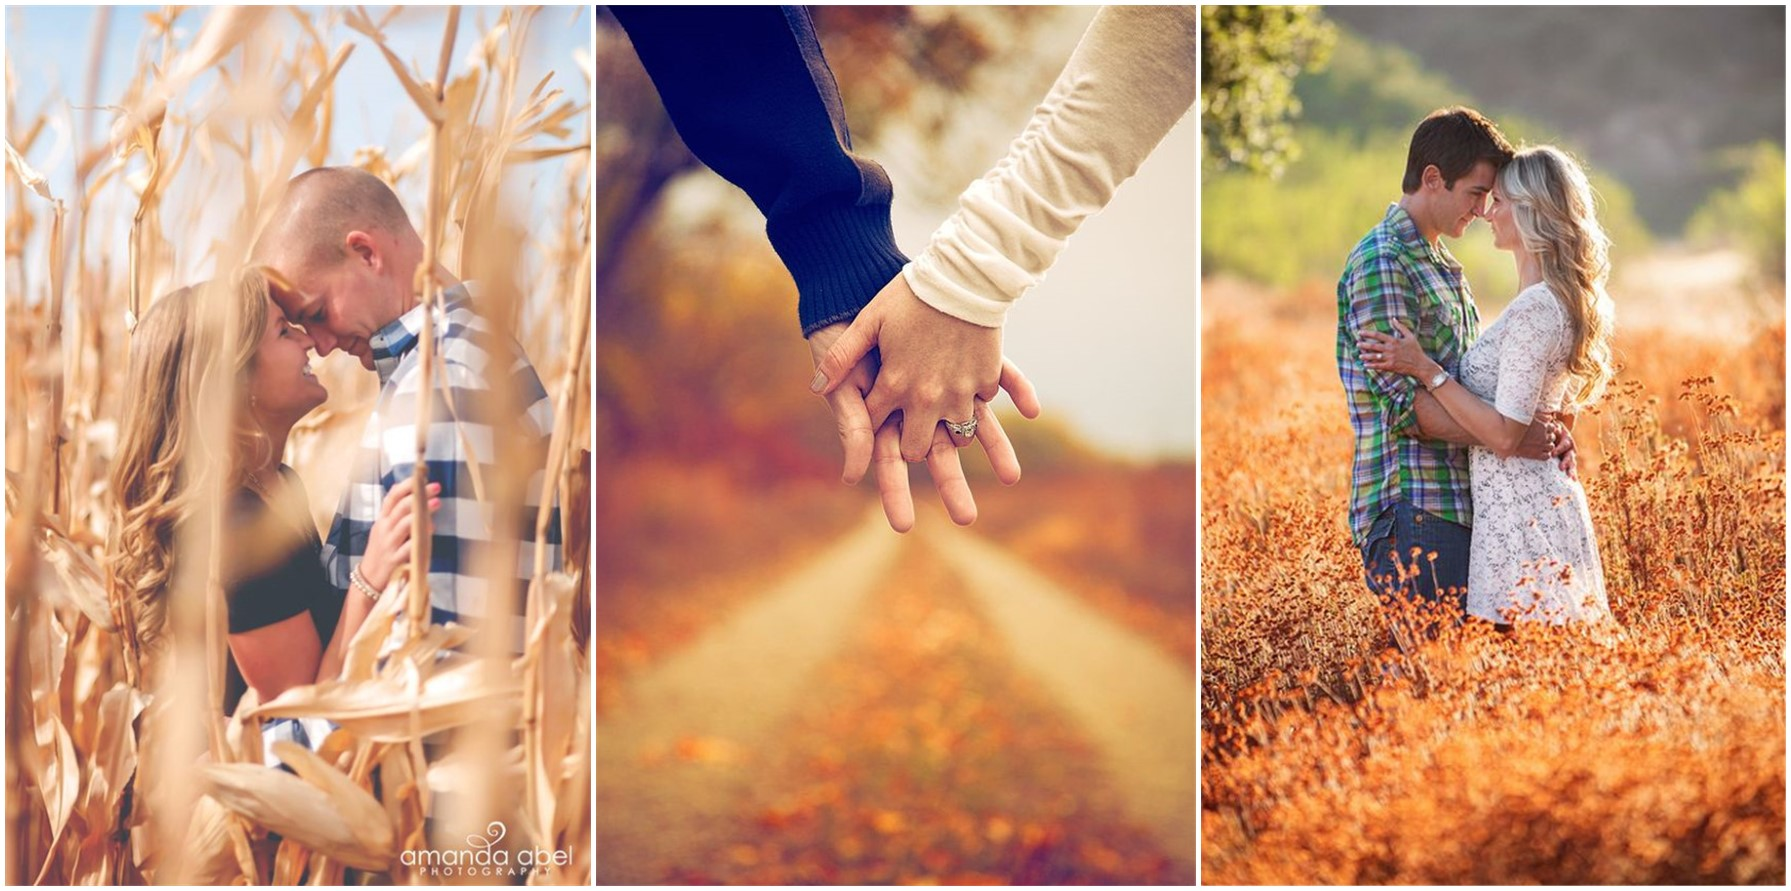 23 Creative Fall Engagement Photo Shoots Ideas